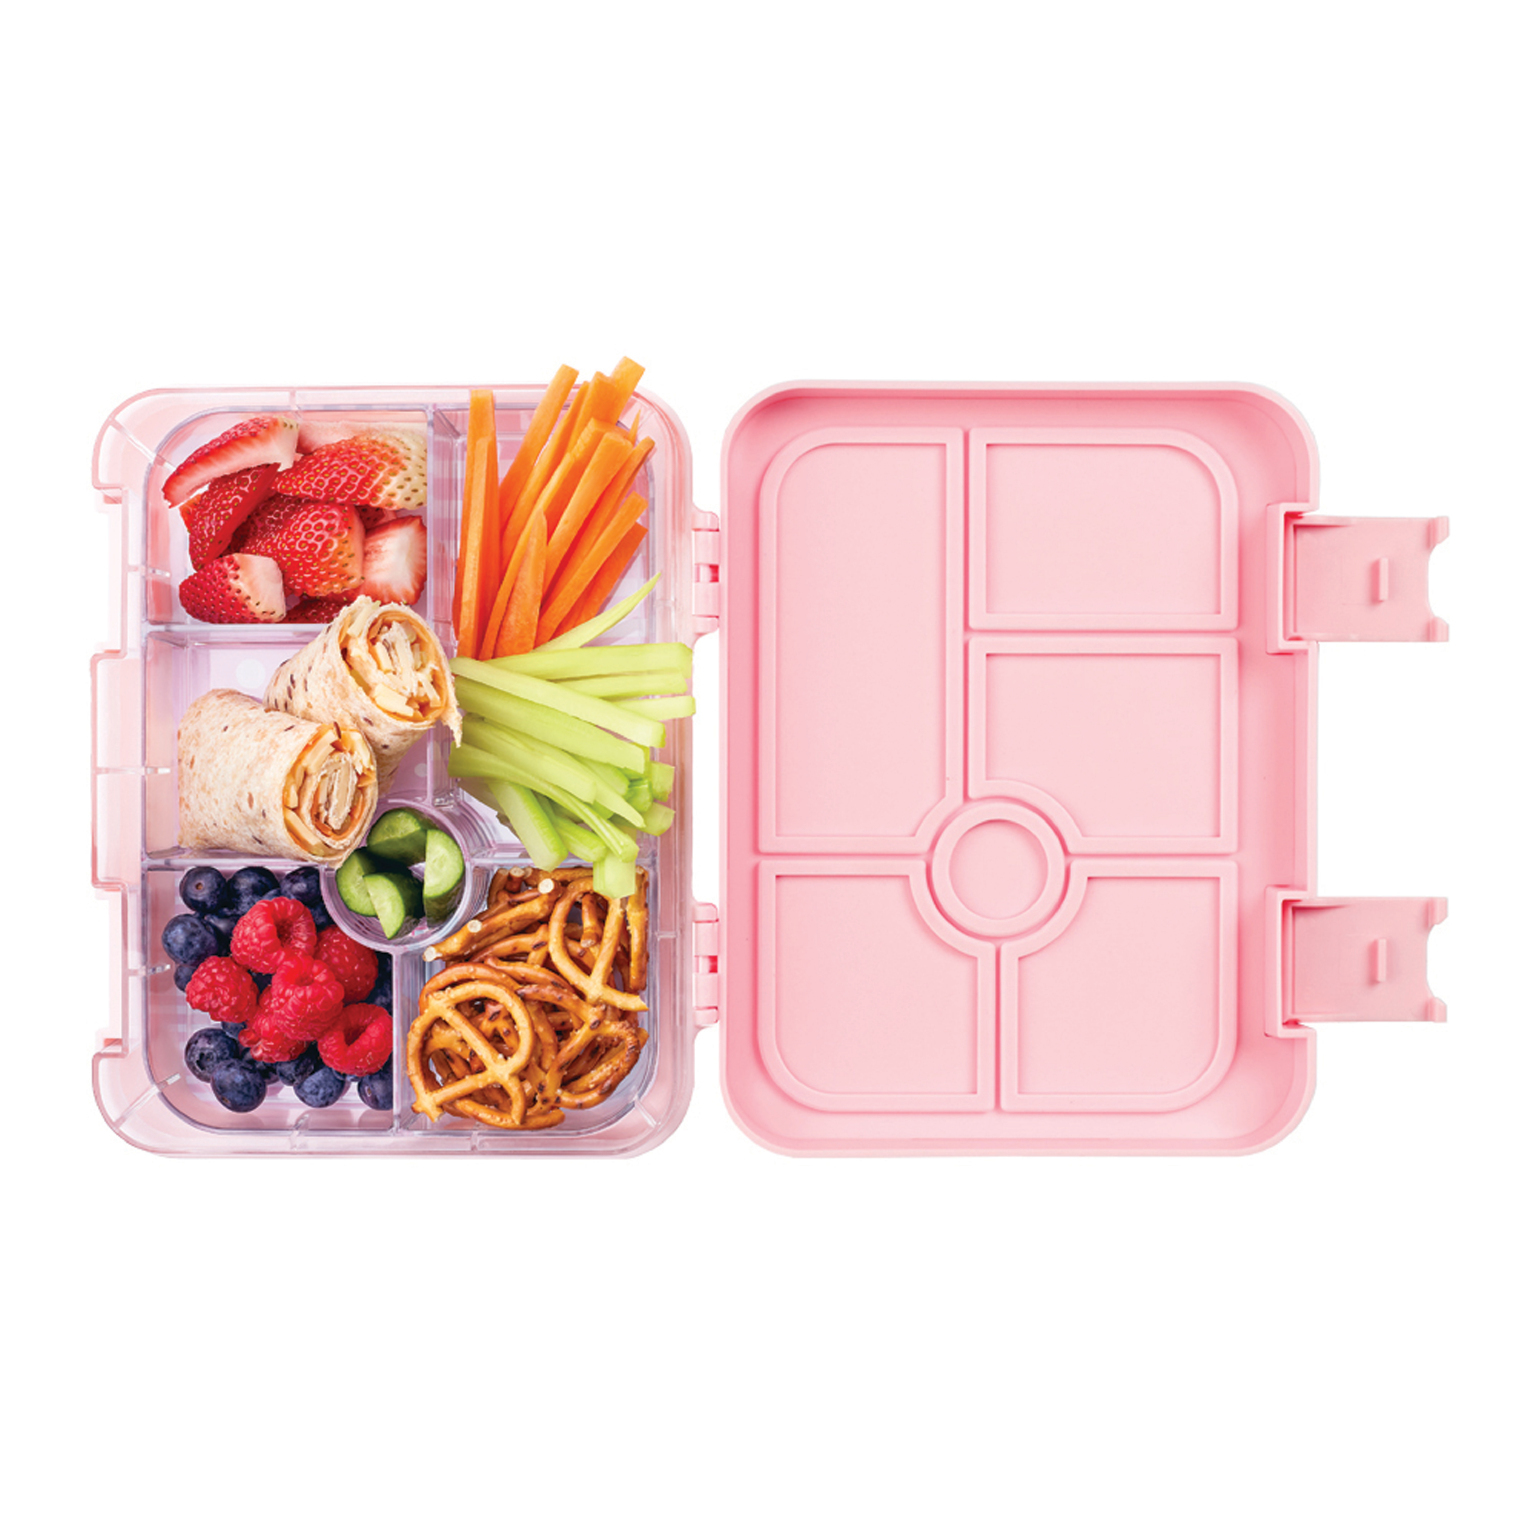 Chirpy Bird Bento Box image